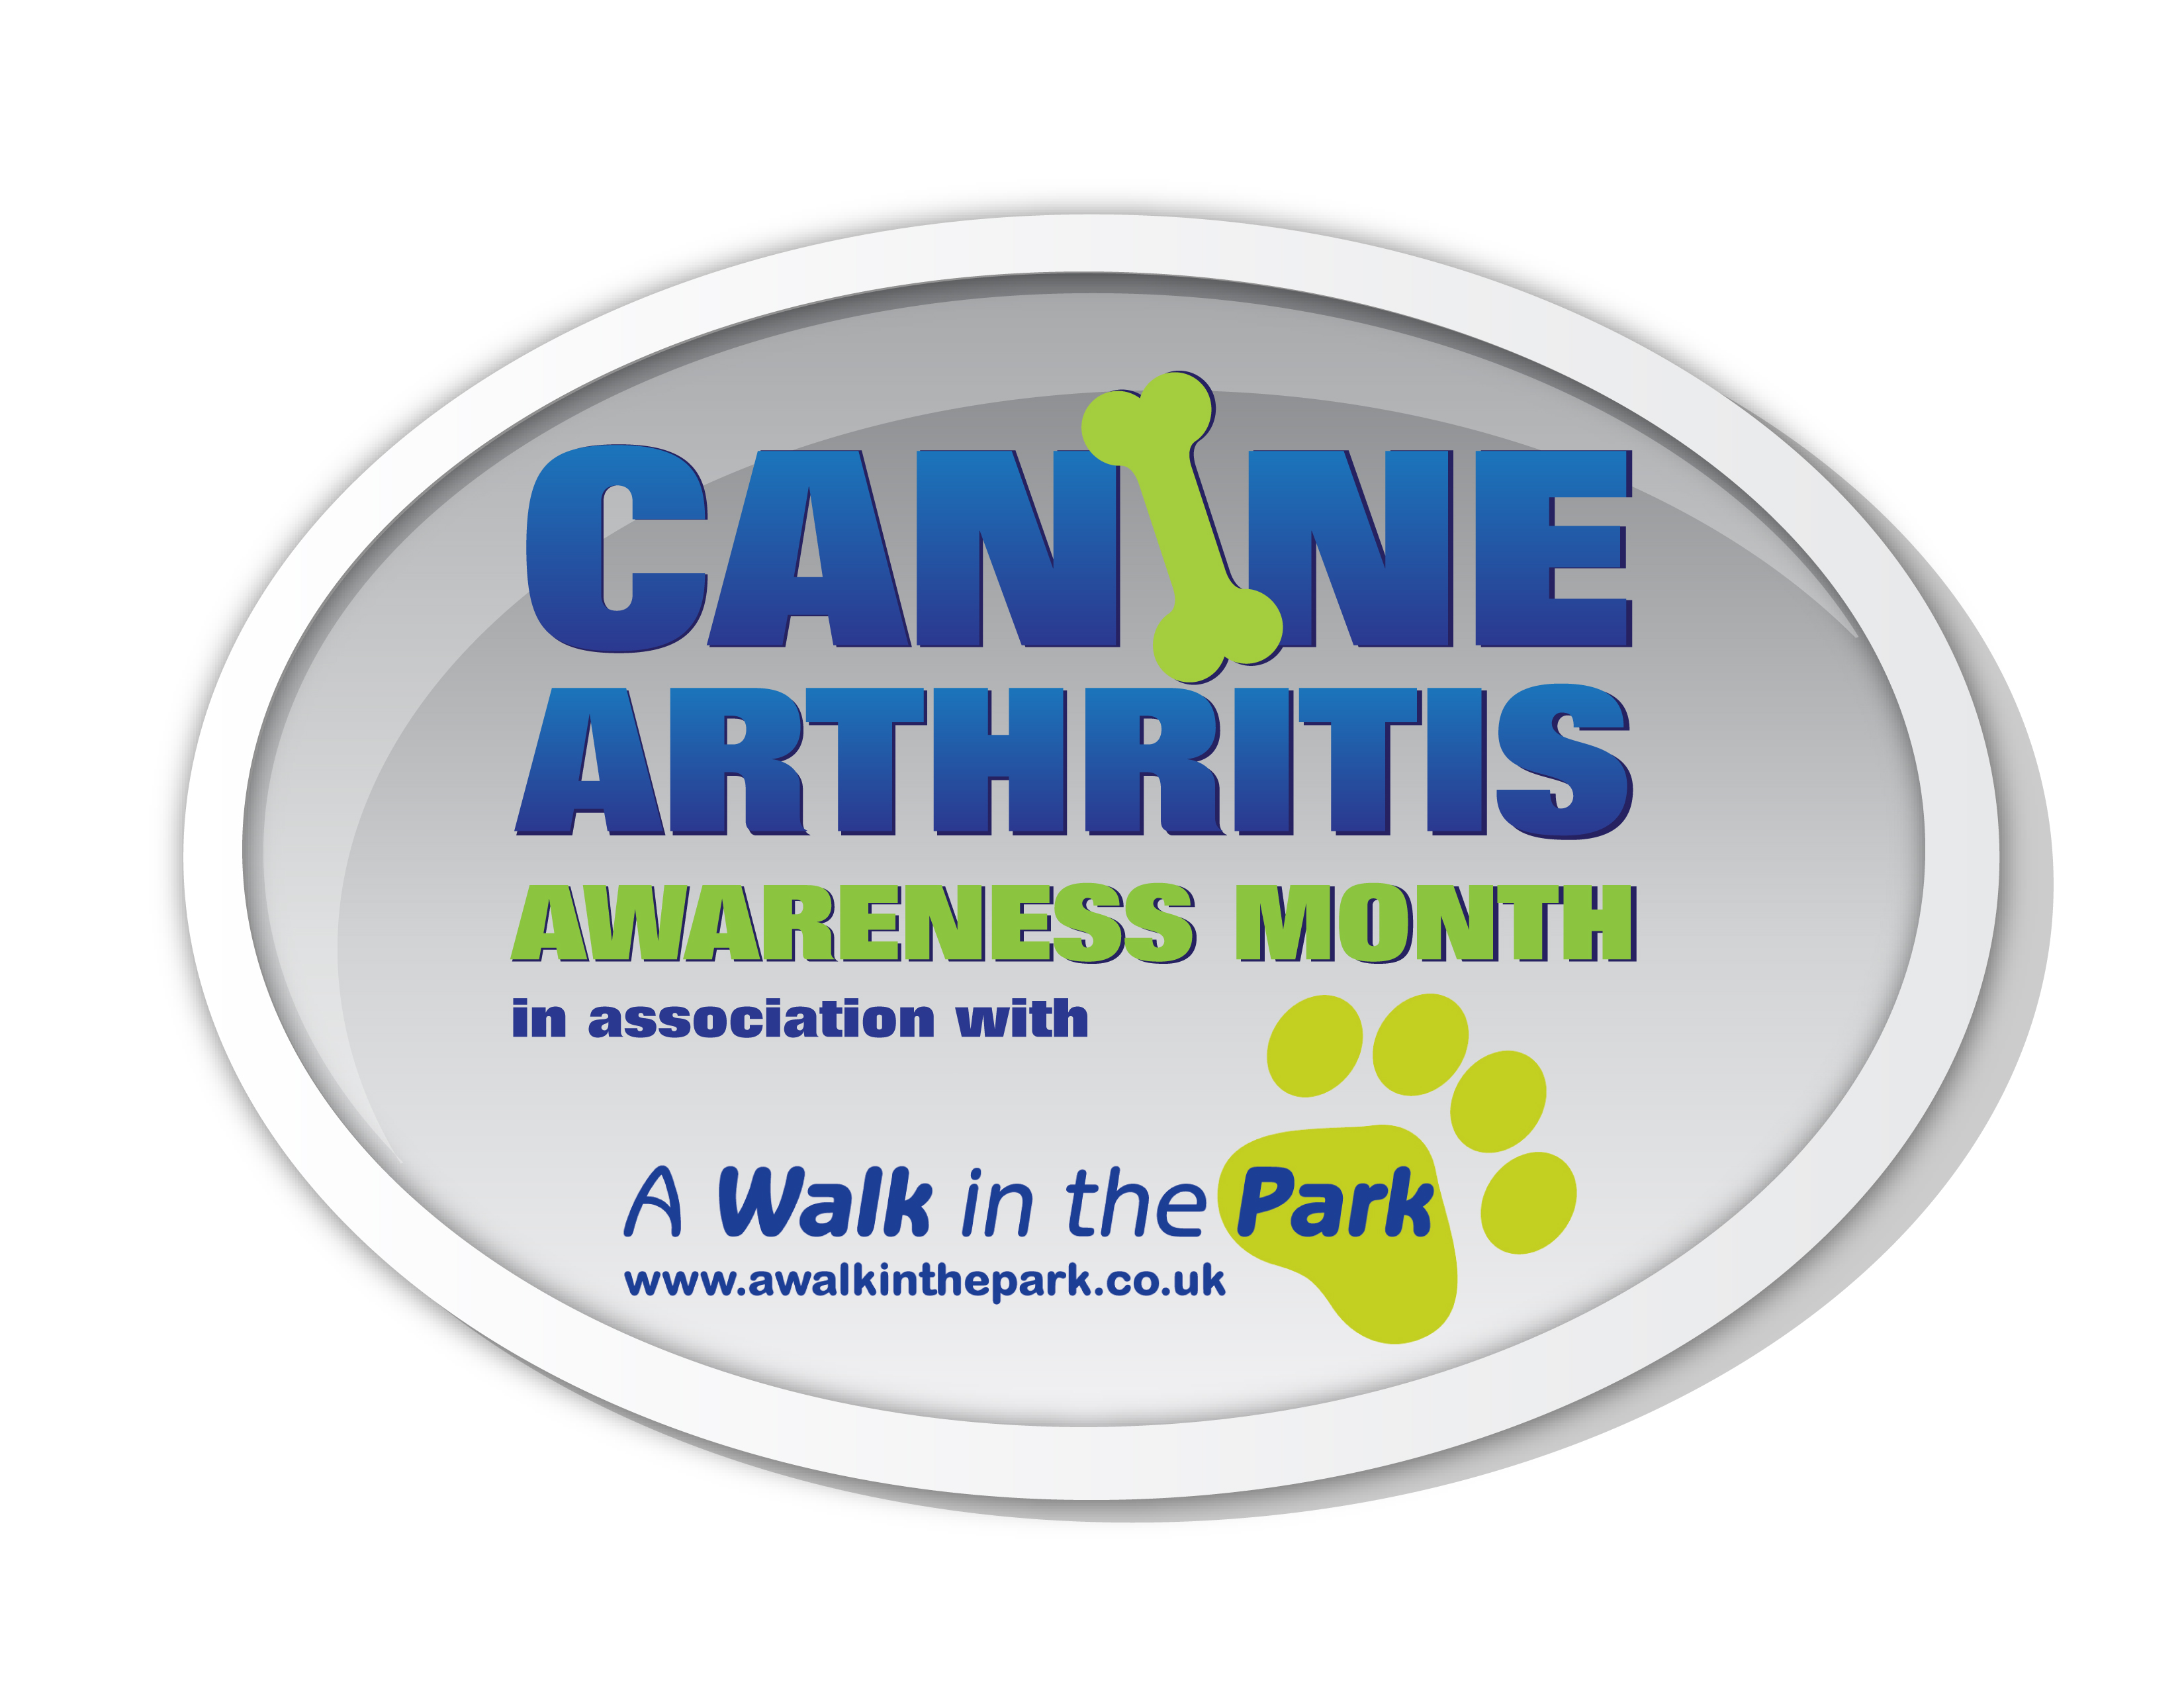 Canine Arthritis Awareness Month in association with A Walk In The Park